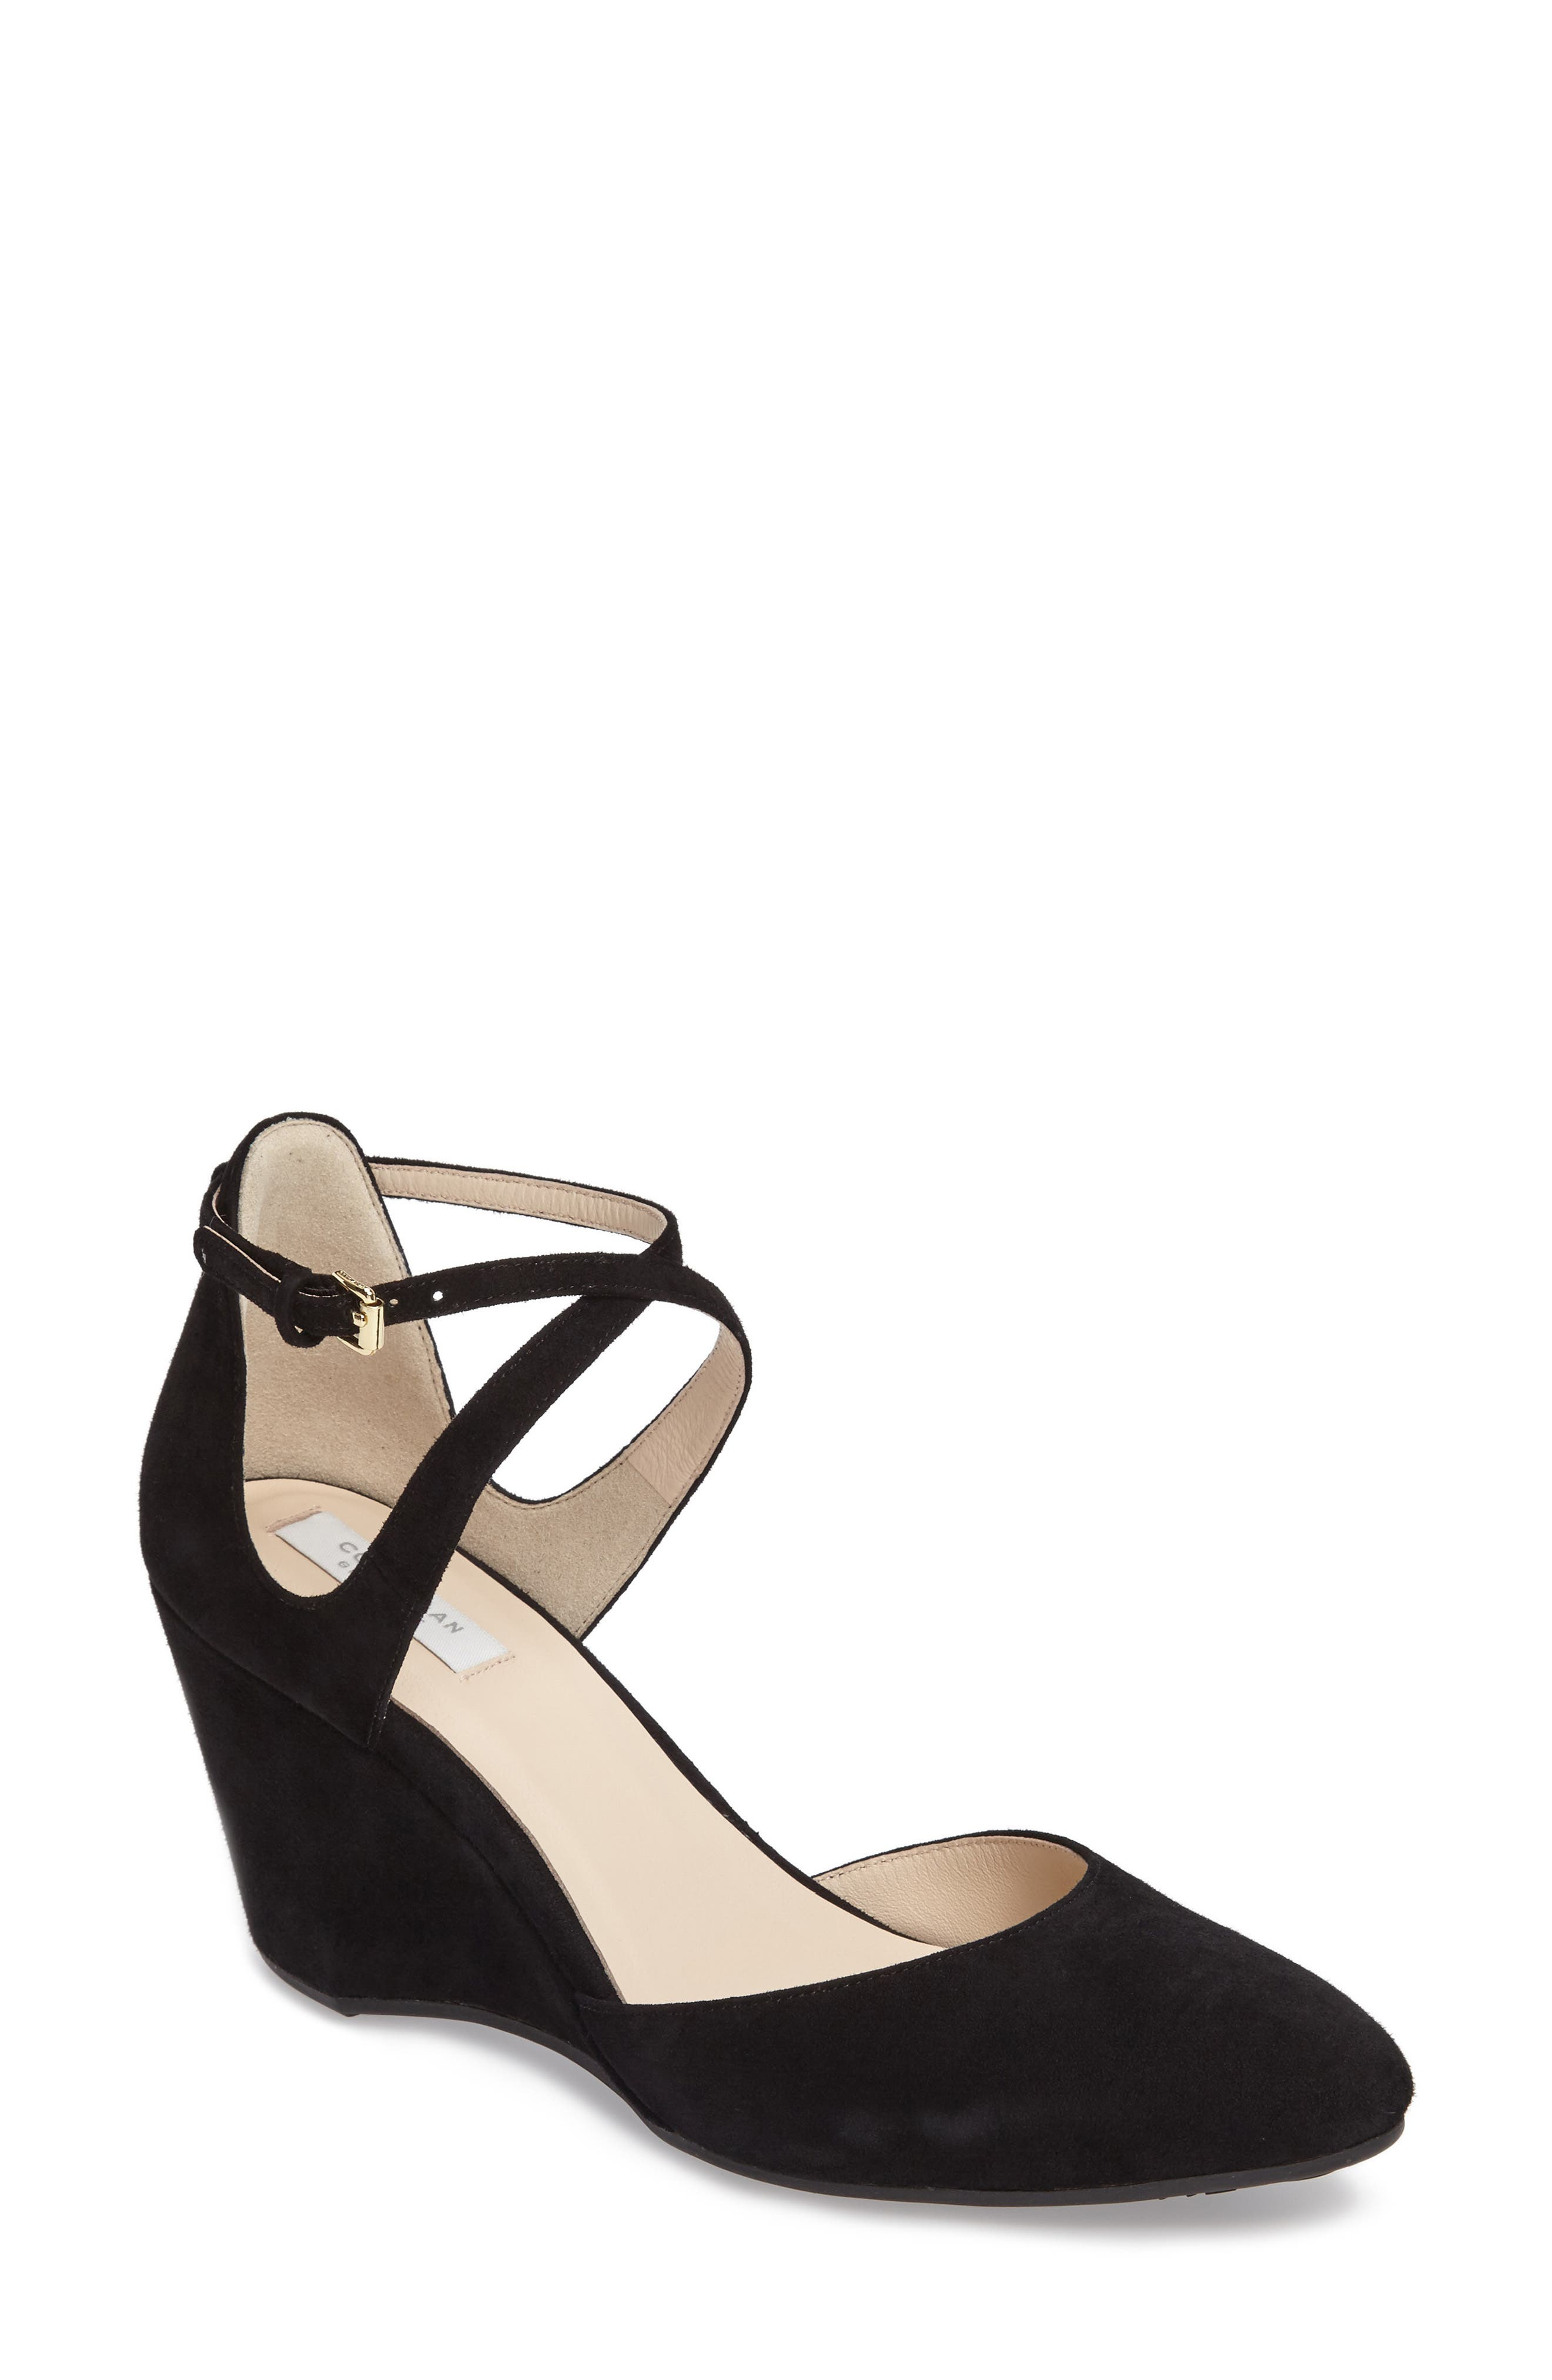 Lacey Ankle Strap Wedge Pump,                         Main,                         color, 001